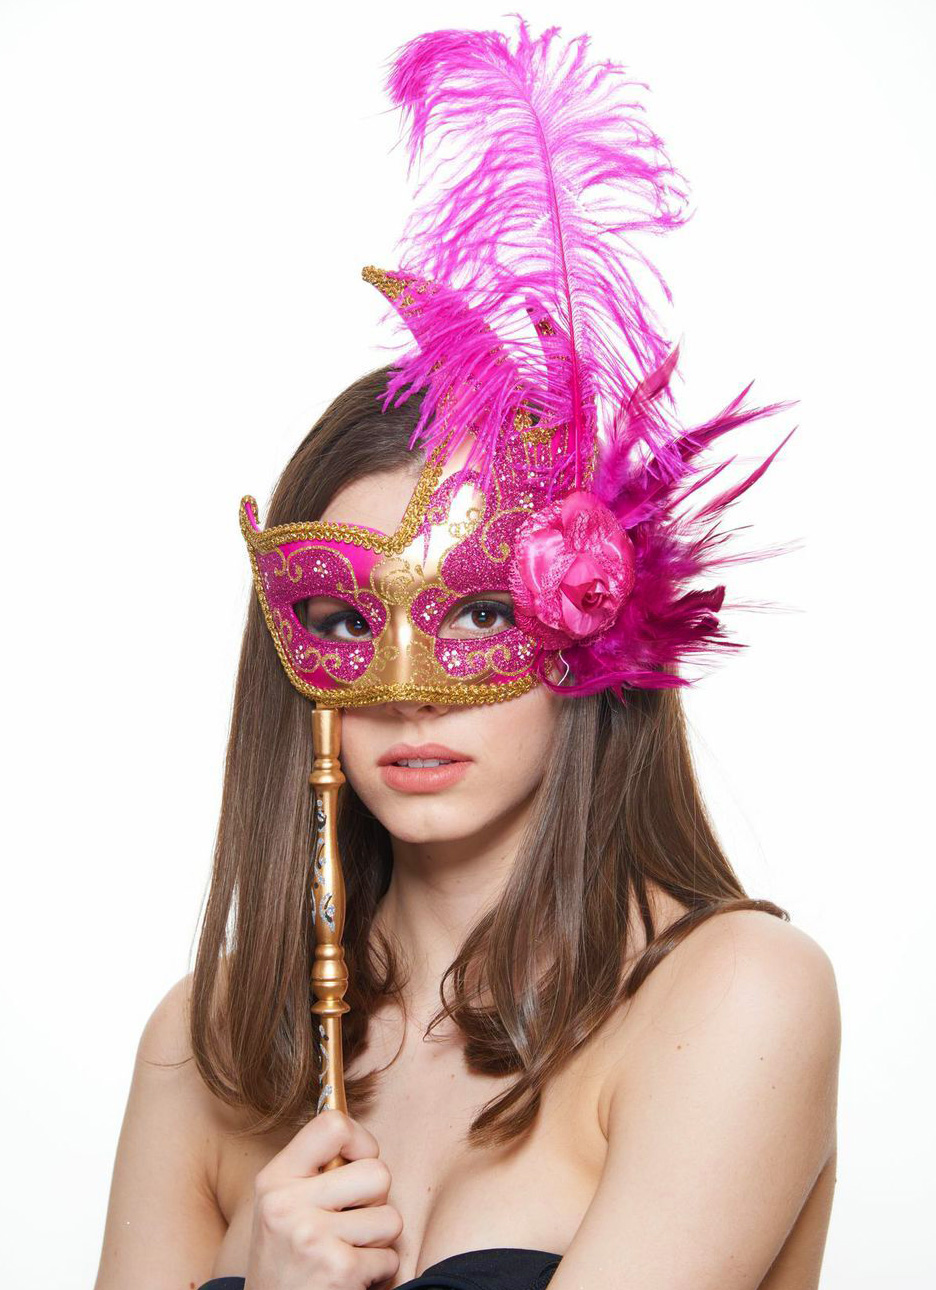 Matte Lipgloss: Handheld Swan Masquerade Mask With Feathers In 12 Colors